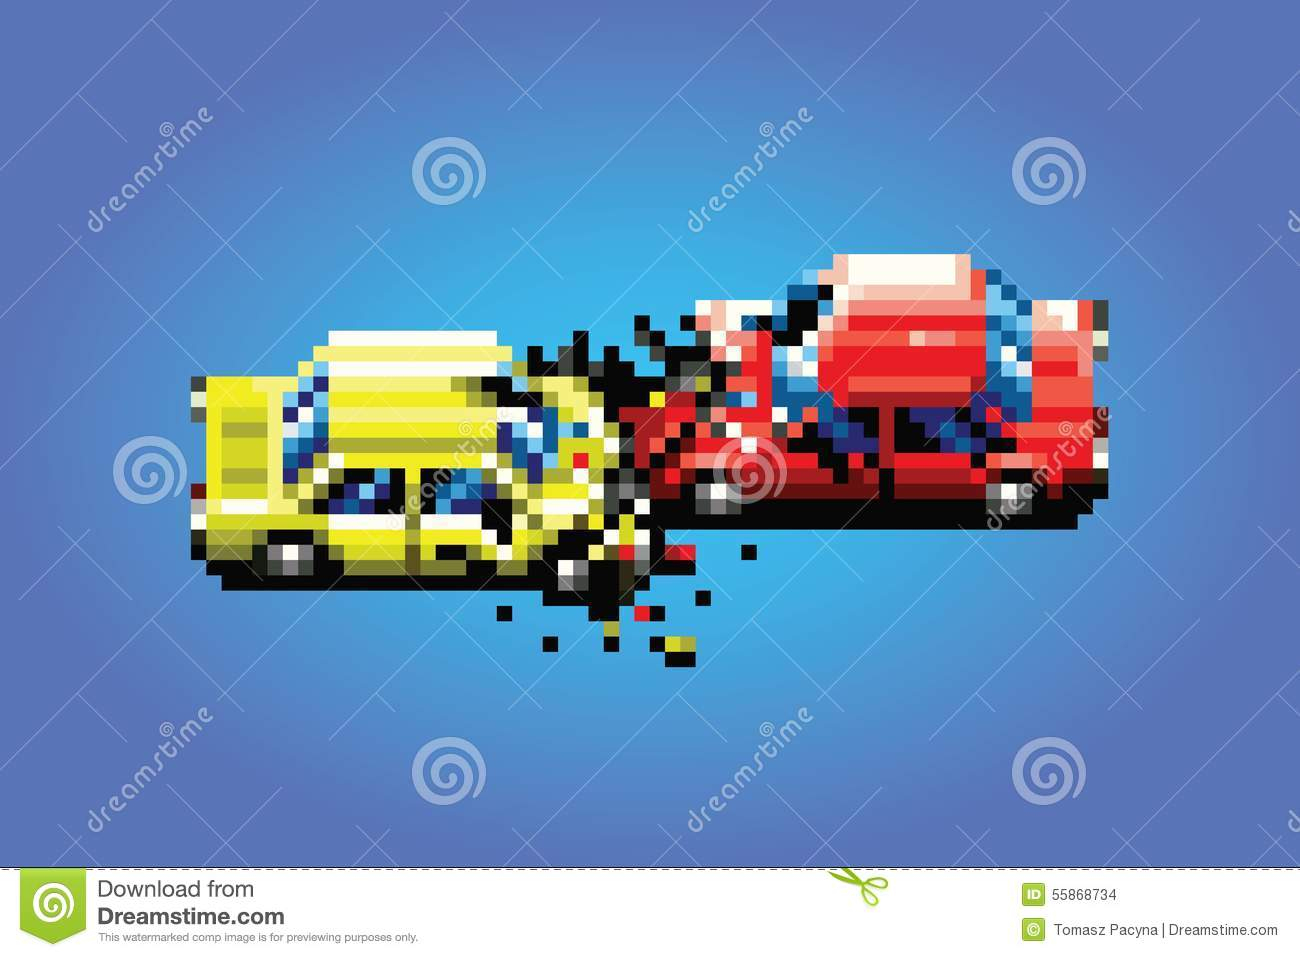 Illustration De Style De Jeu D'art De Pixel D'accidents D dedans Jeux De Voiture Accident